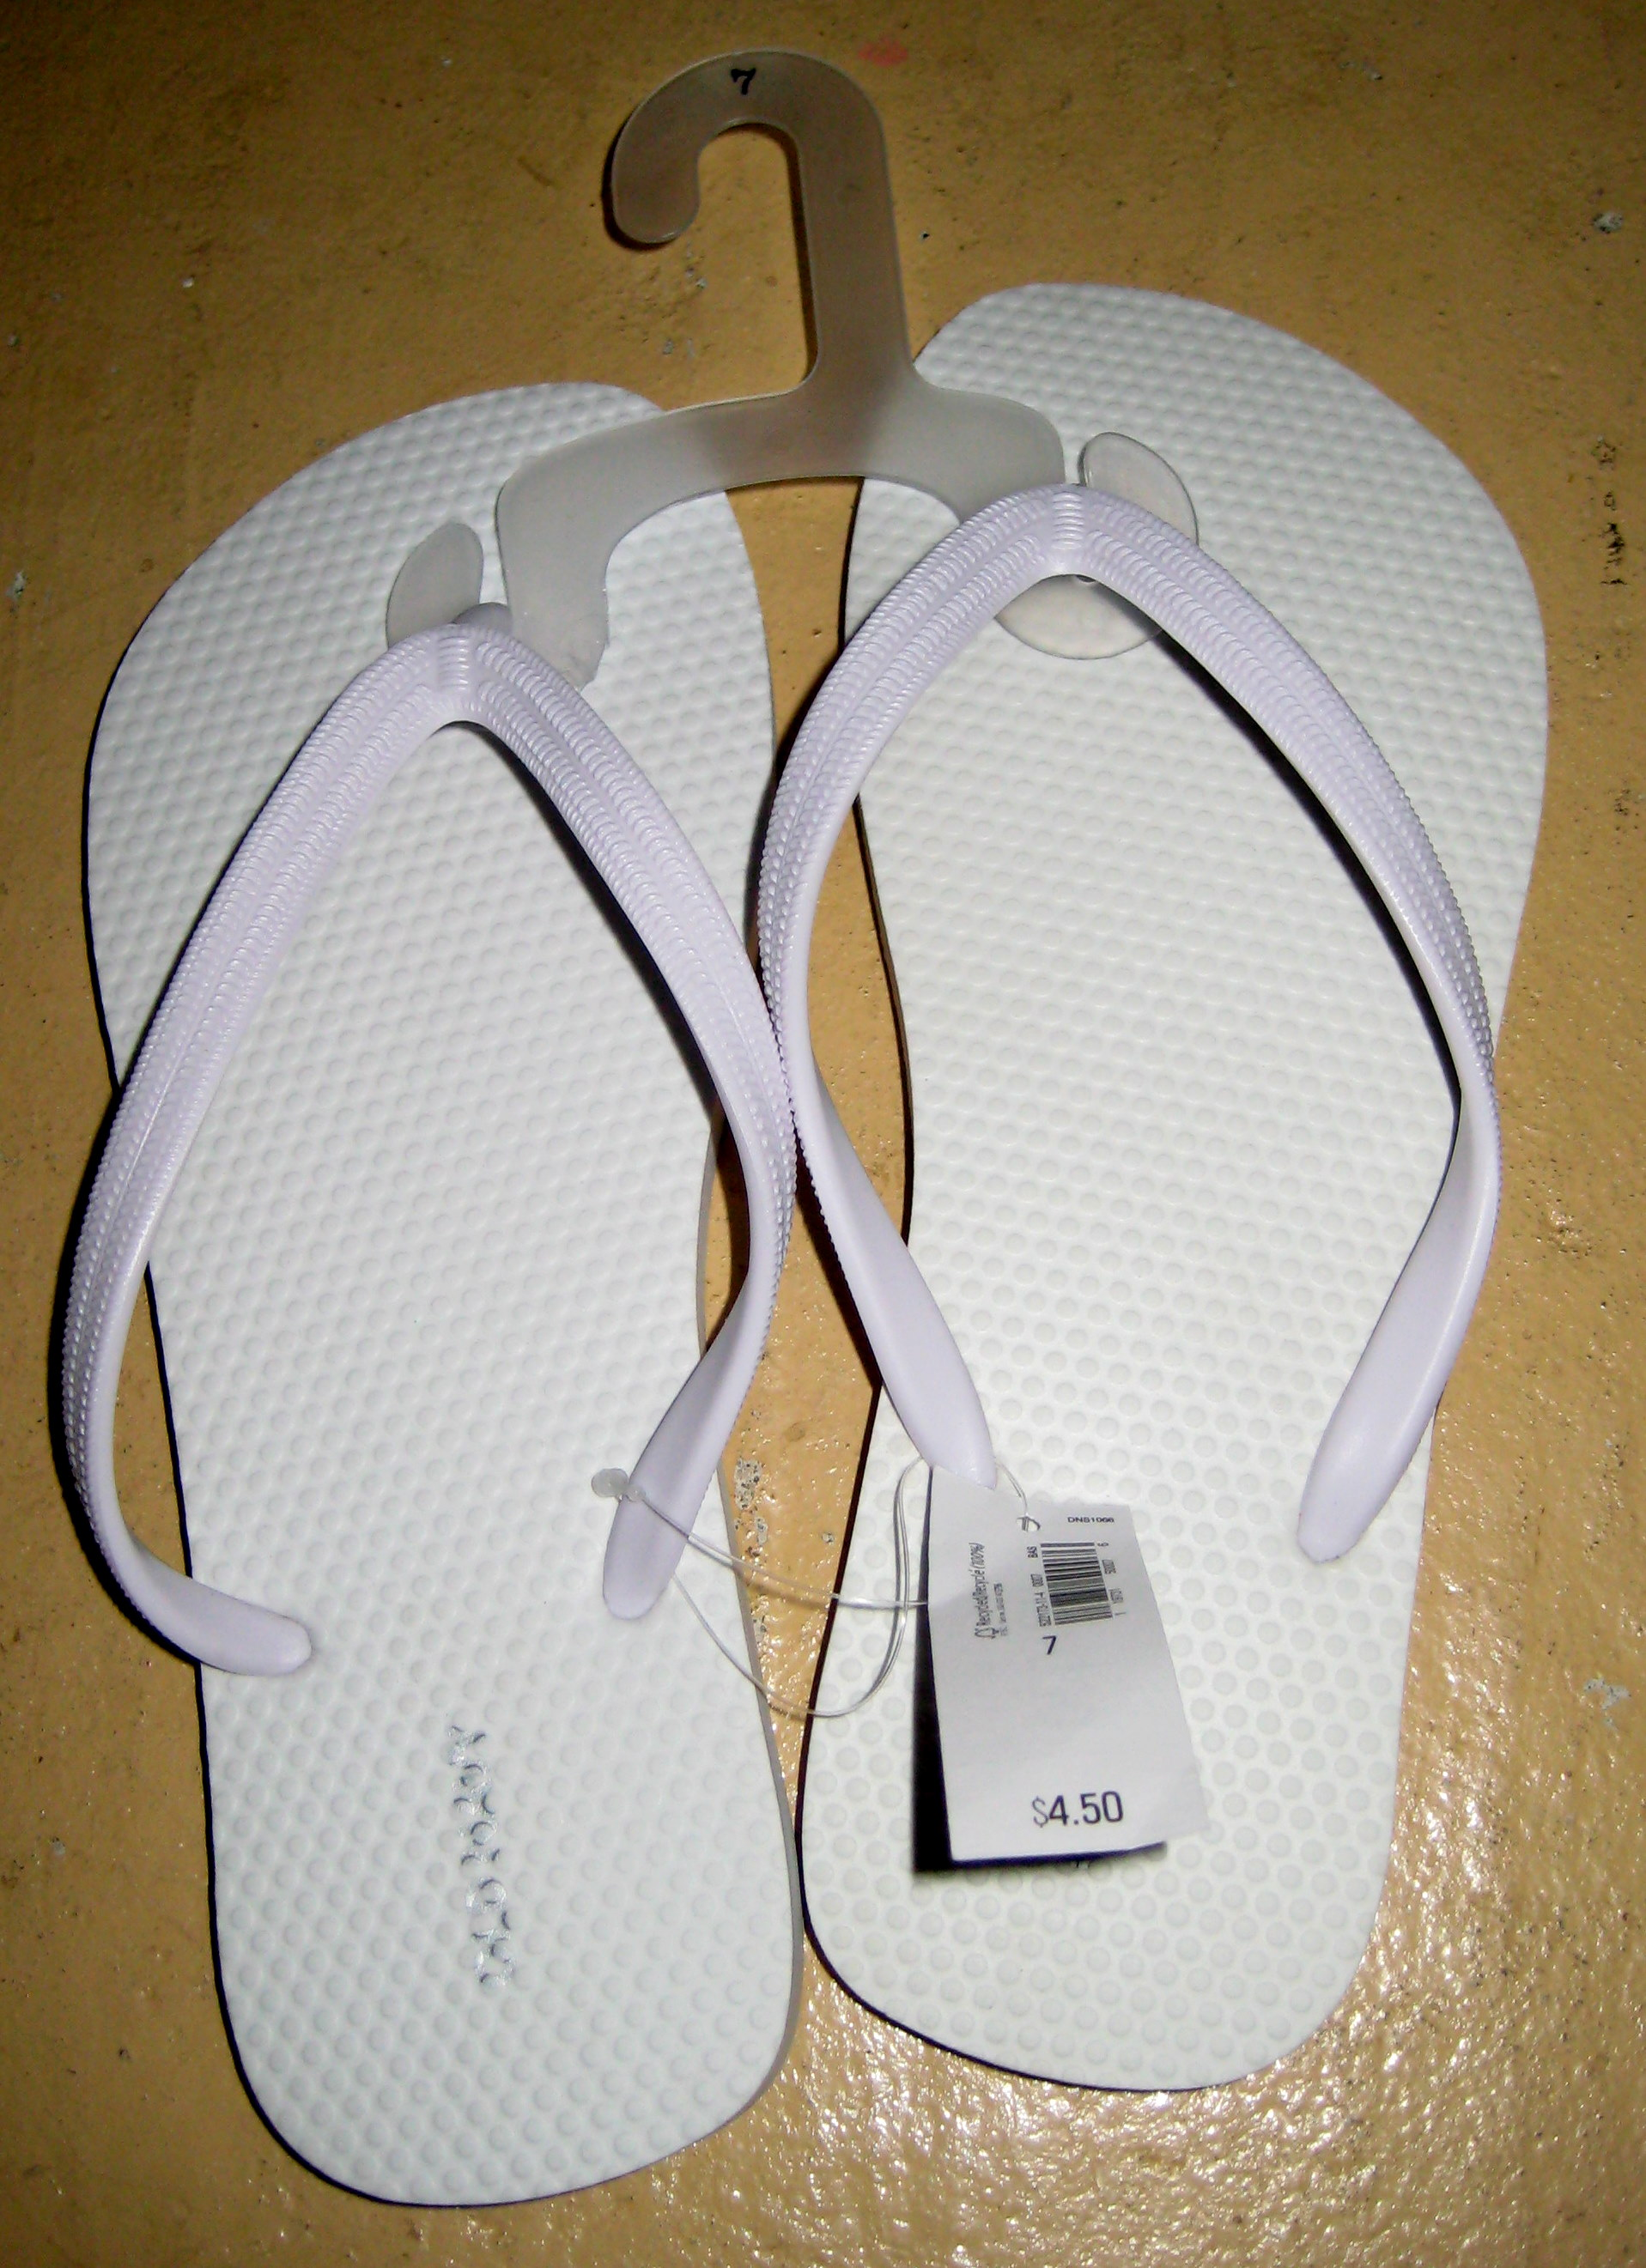 Black sandals old navy - Old Navy 2 Or 6 I Picked Up A Black Pair Too A First For Me